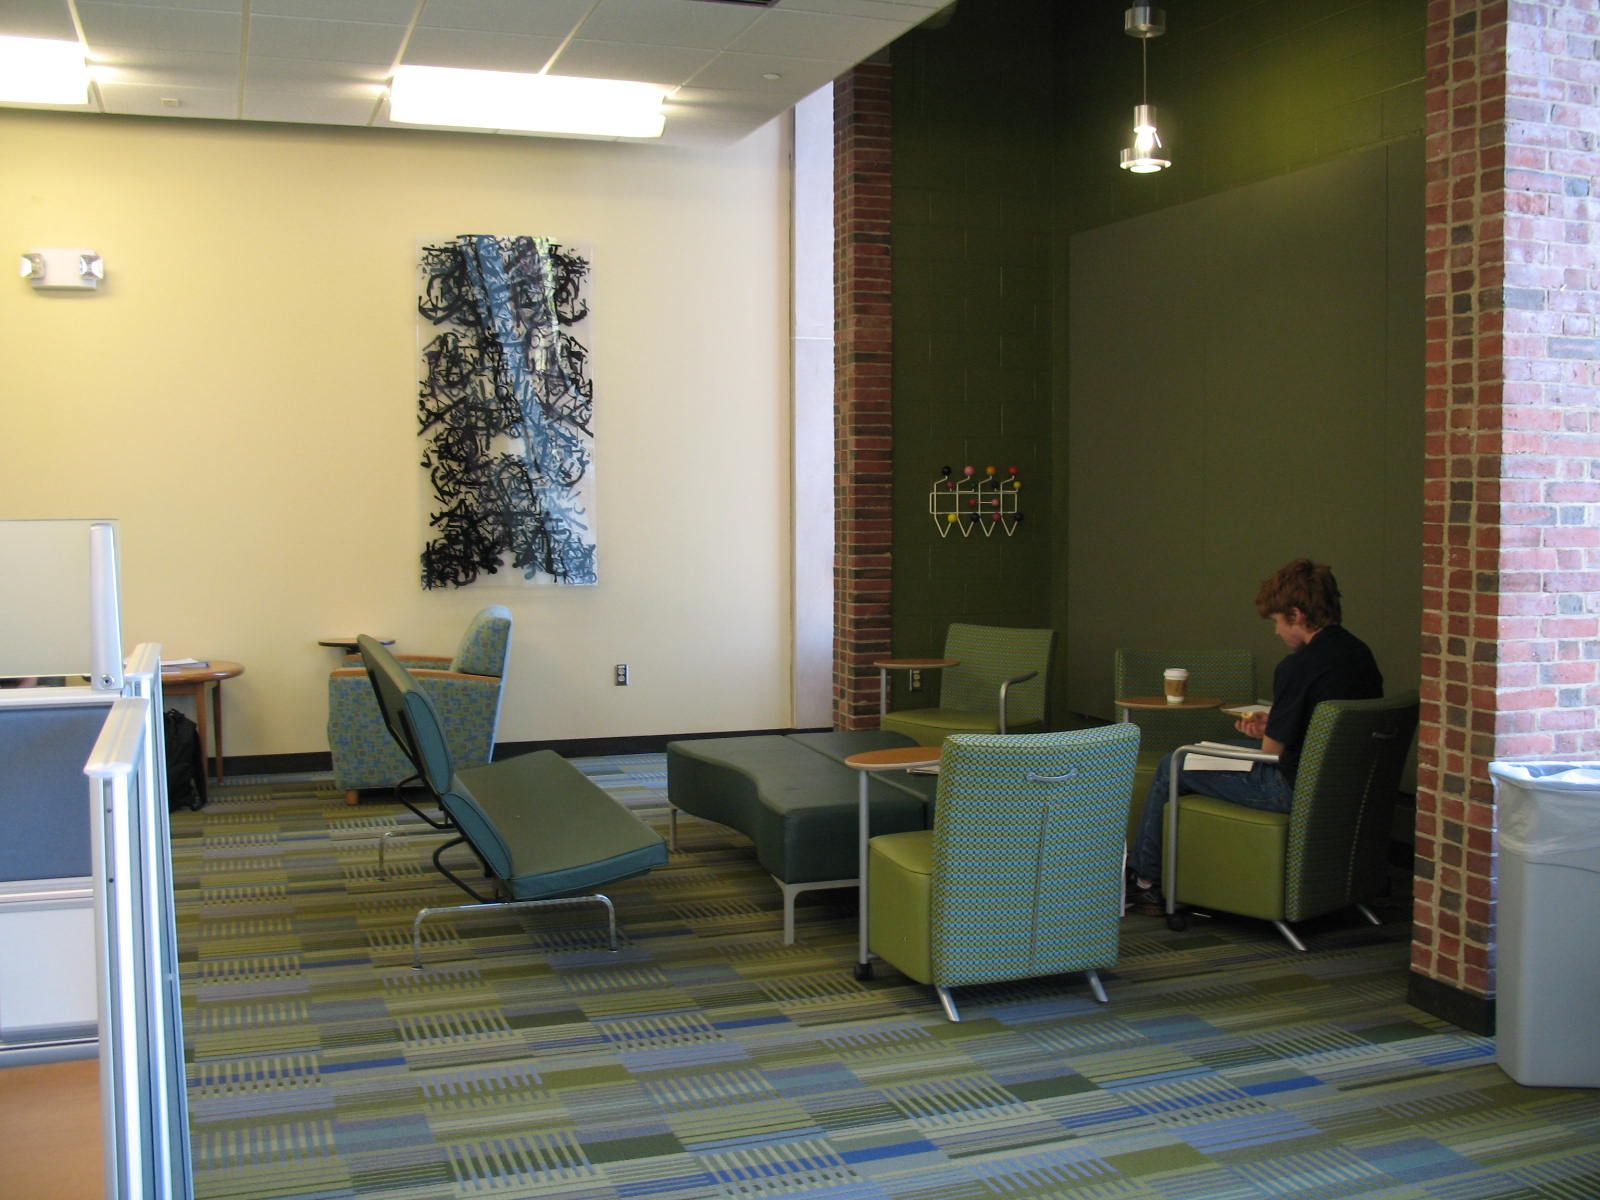 three chair styles share same large footrest/table. Note handle on chair back. And nice green wall! (U of R)